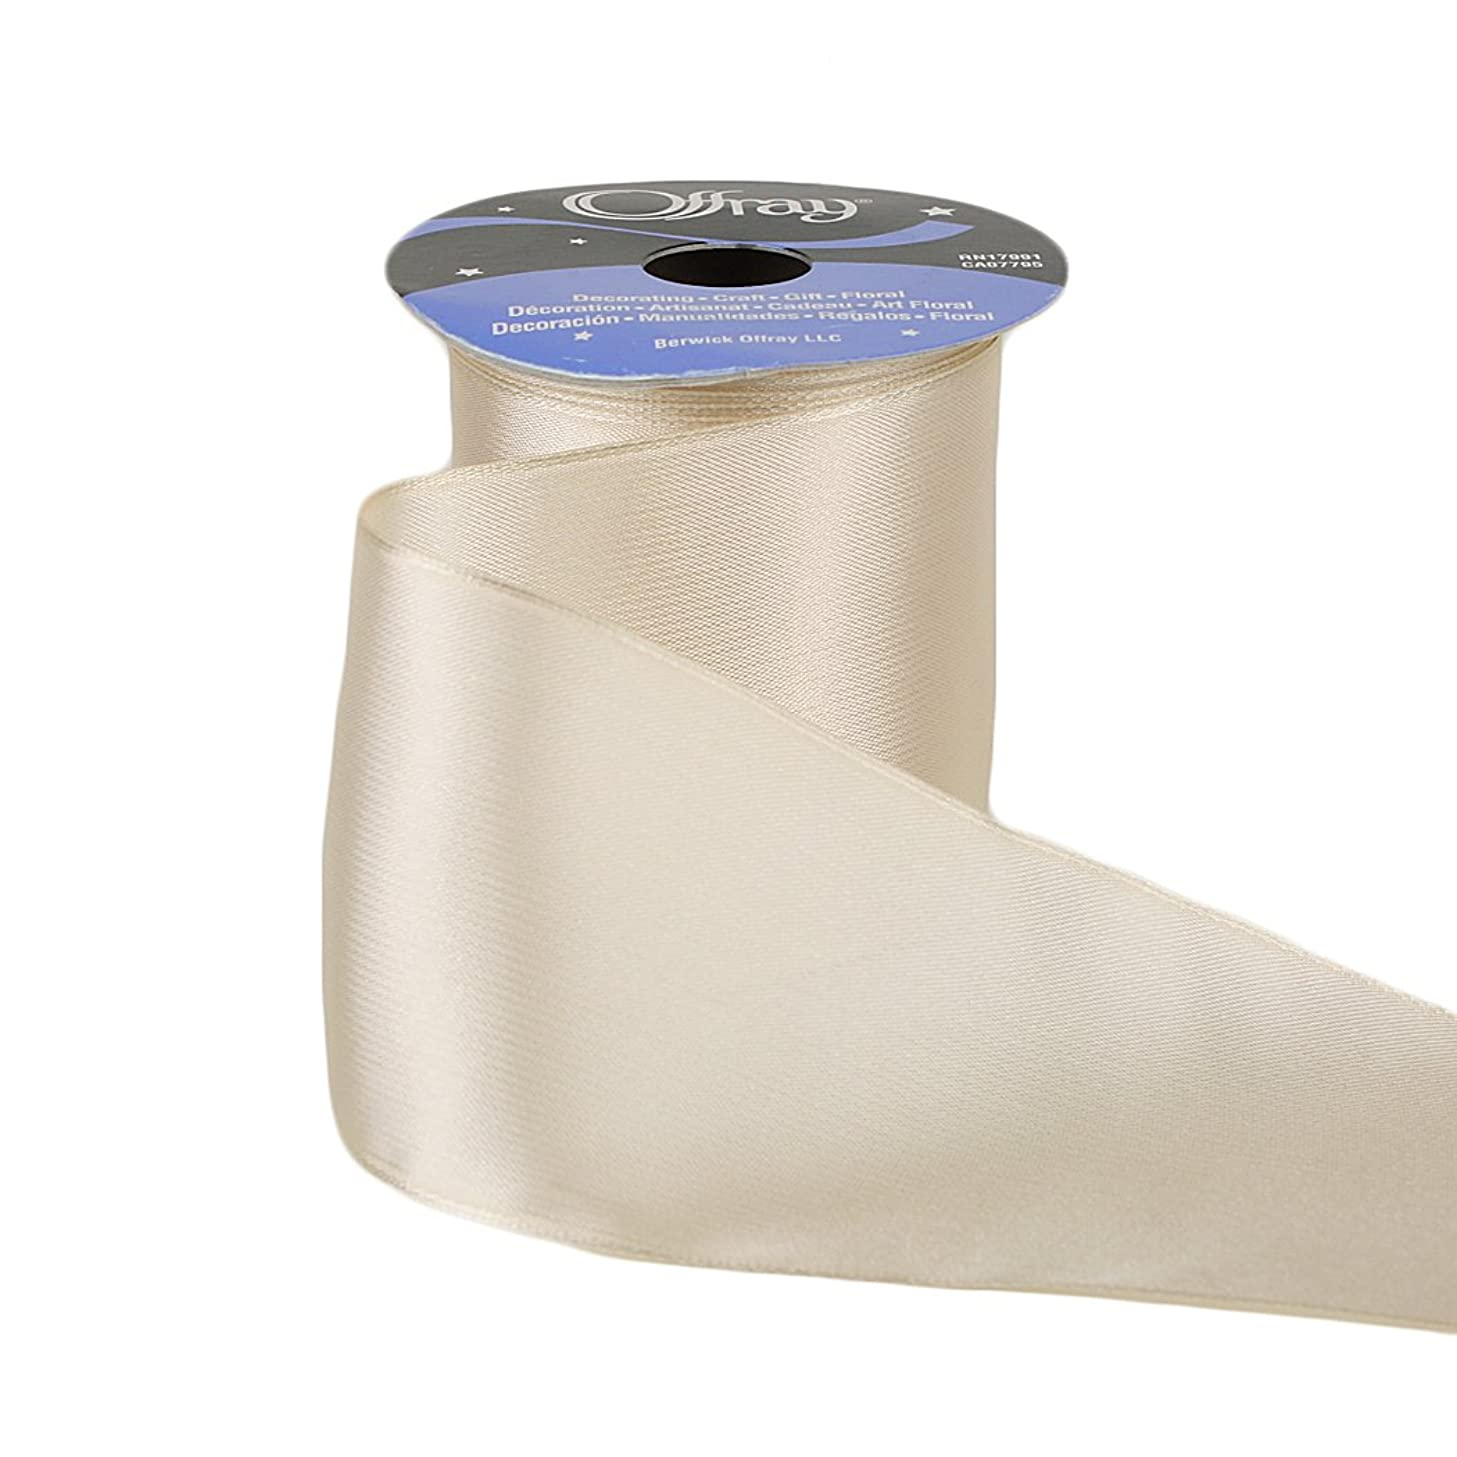 Offray Wired Edge Prelude Craft Ribbon, 2-1/2-Inch Wide by 10-Yard Spool, Ivory